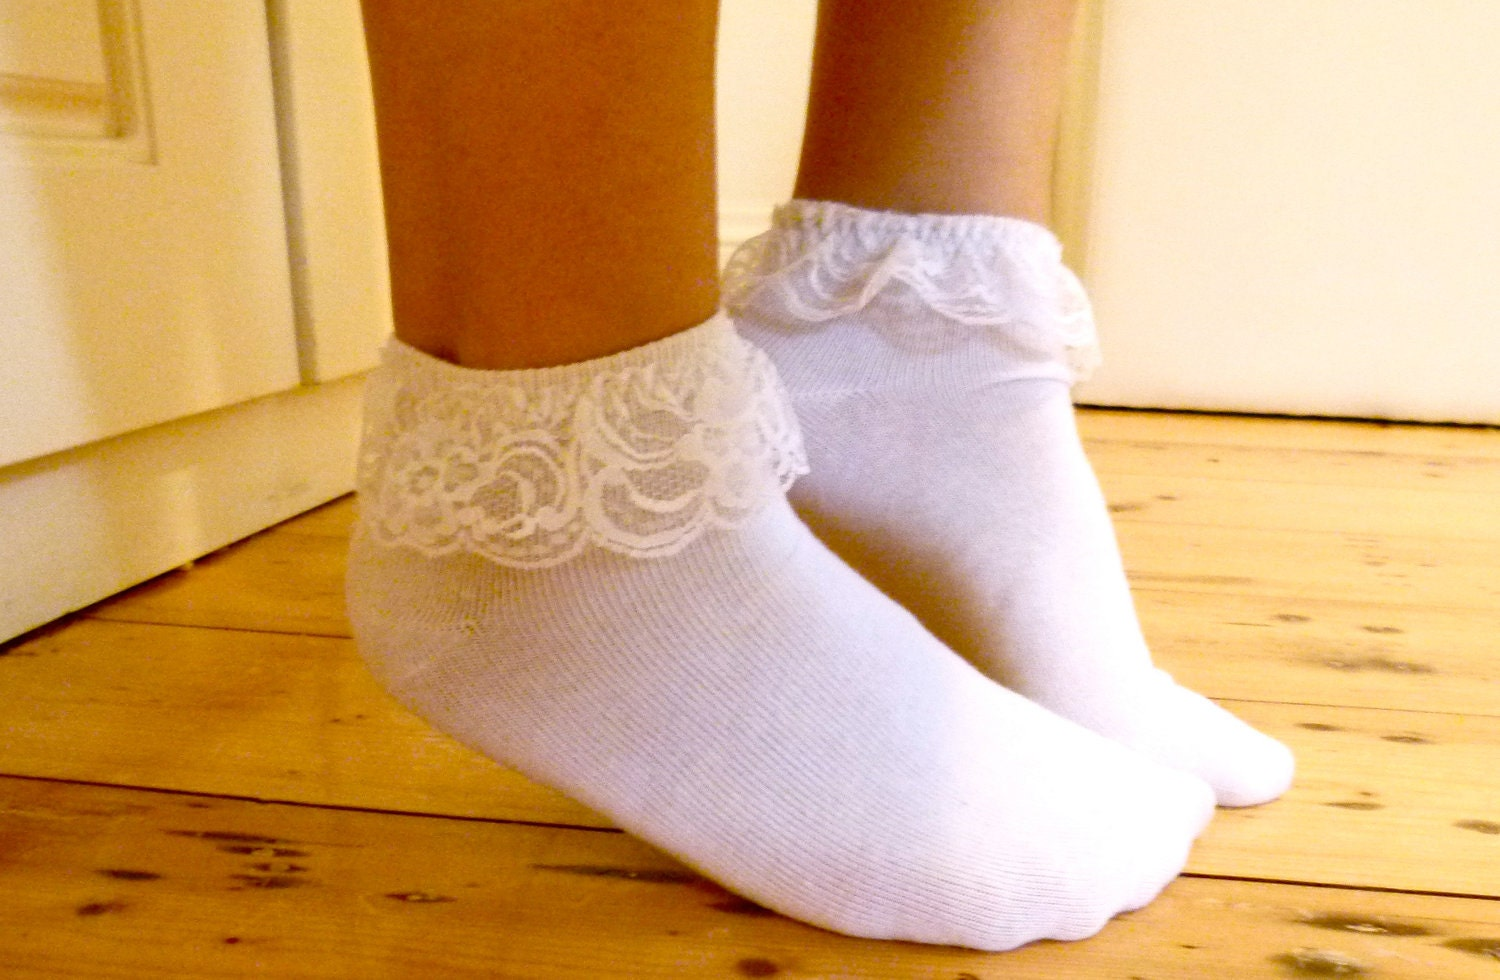 You searched for: sock lace trim! Etsy is the home to thousands of handmade, vintage, and one-of-a-kind products and gifts related to your search. No matter what you're looking for or where you are in the world, our global marketplace of sellers can help you find unique and affordable options. Let's get started!